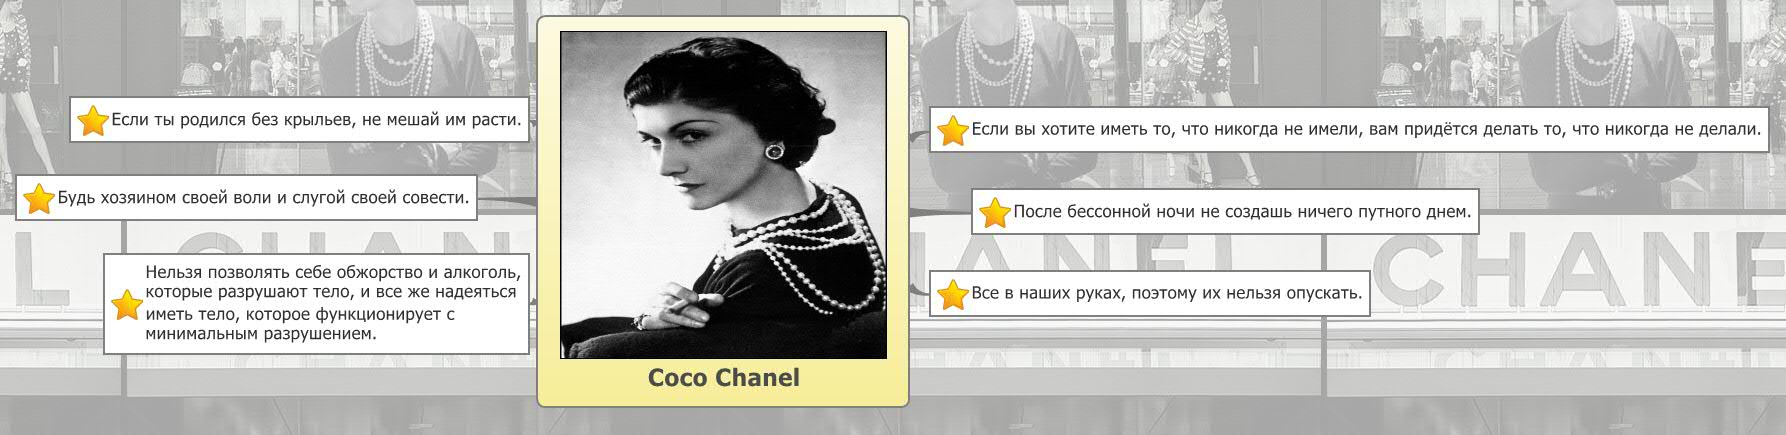 Coco Chanel  Simple English Wikipedia the free encyclopedia